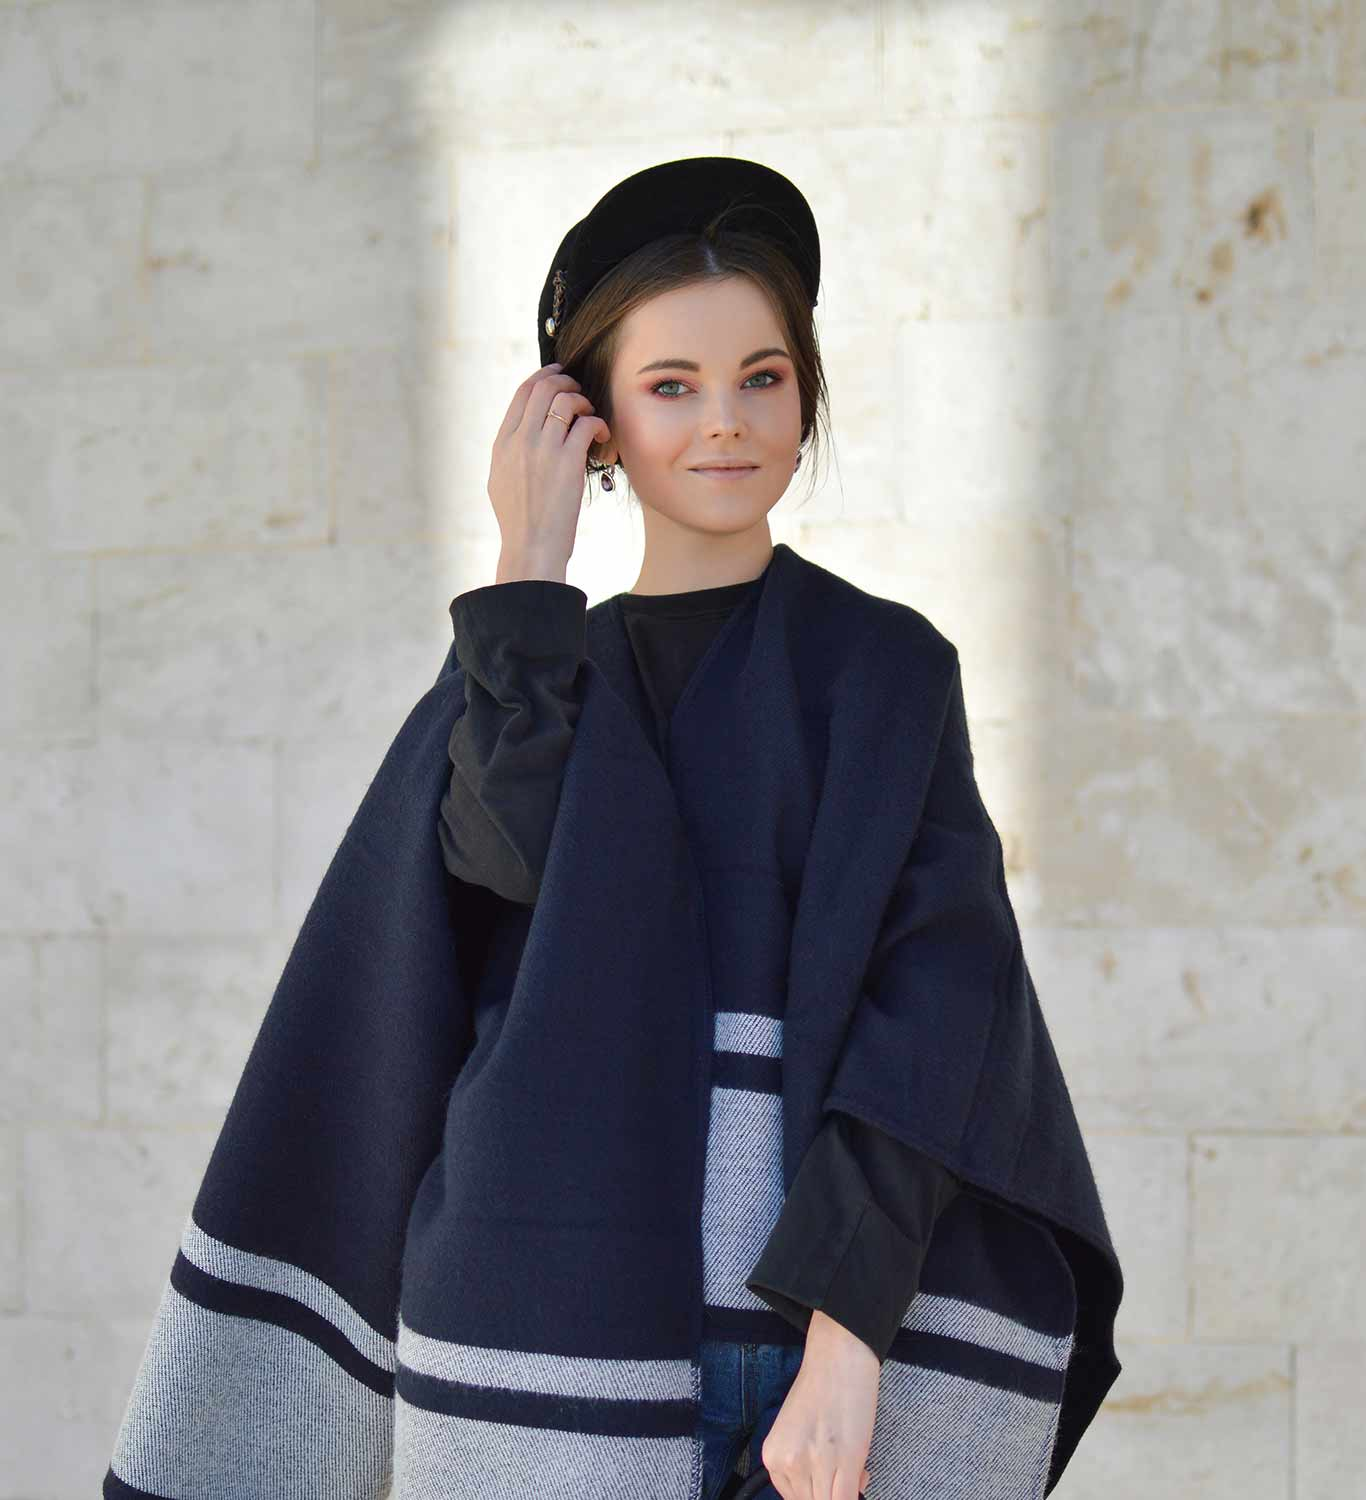 How to style a poncho?